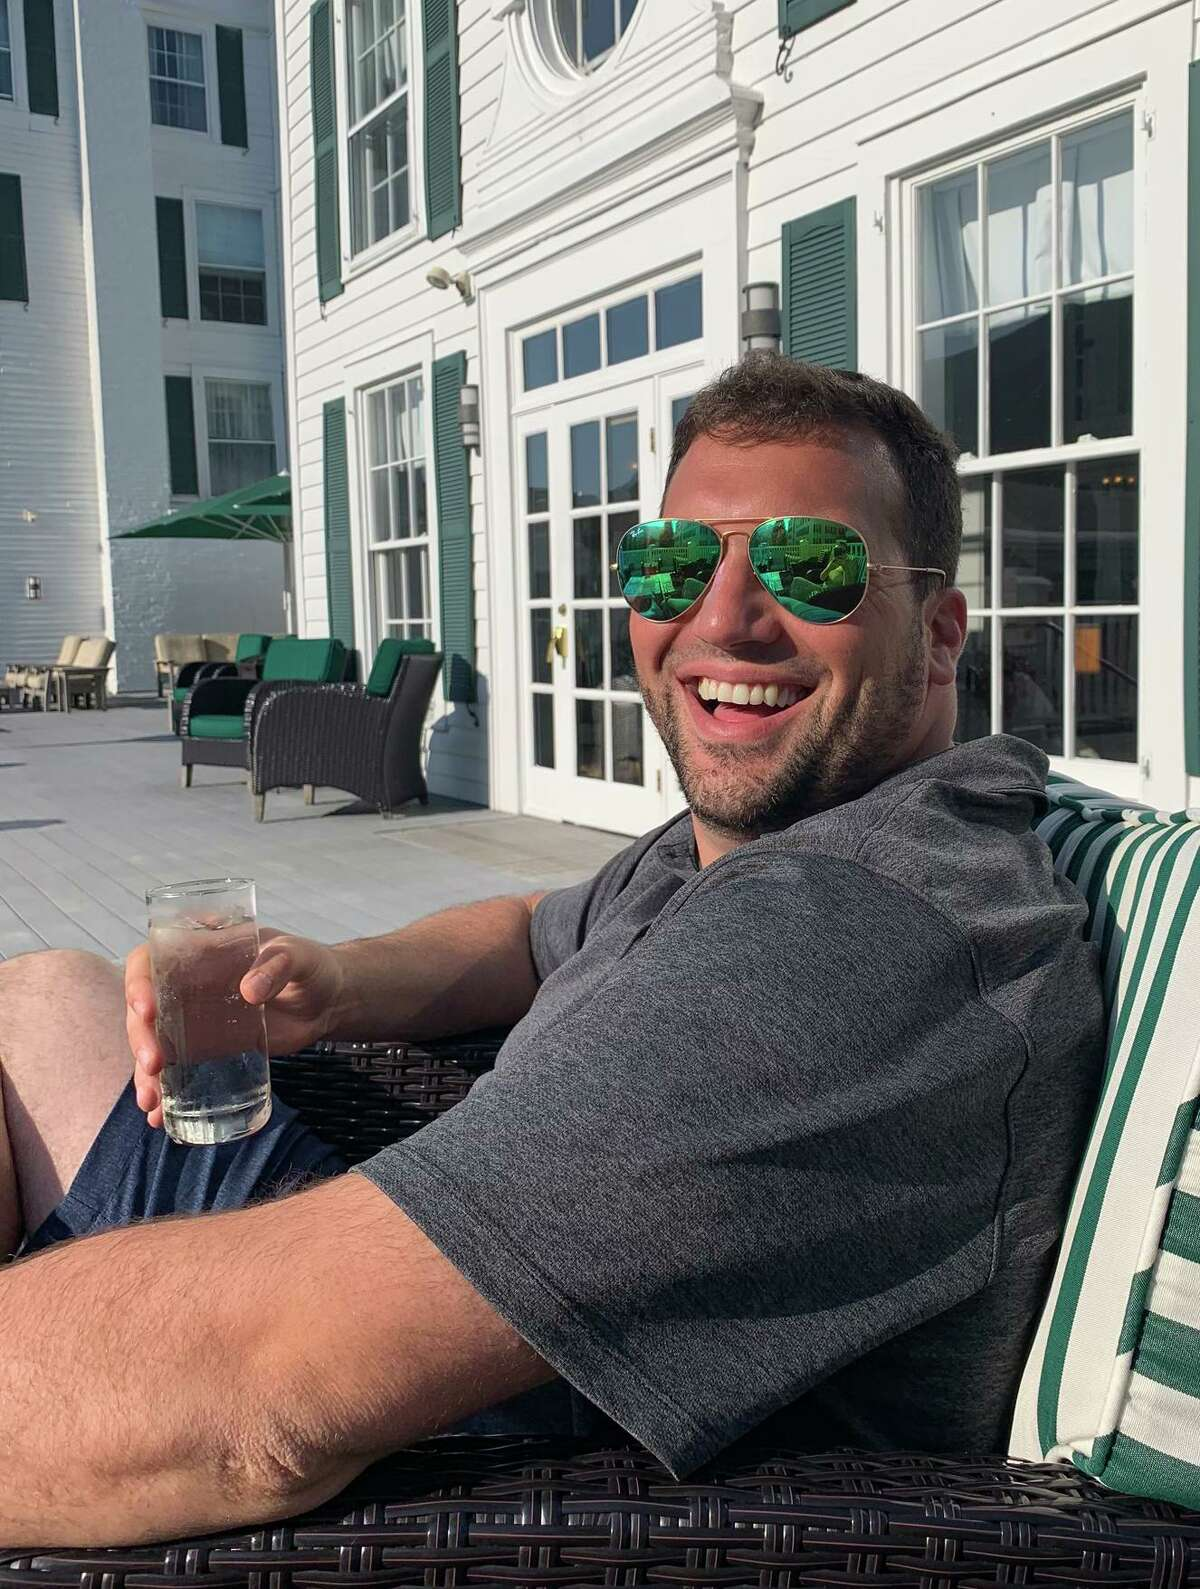 Chris Andrea, of Stamford, poses for a photo in Newport, R.I while celebrating his engagement. He died unexpectedly on May 29, just 10 days after a major leg surgery.